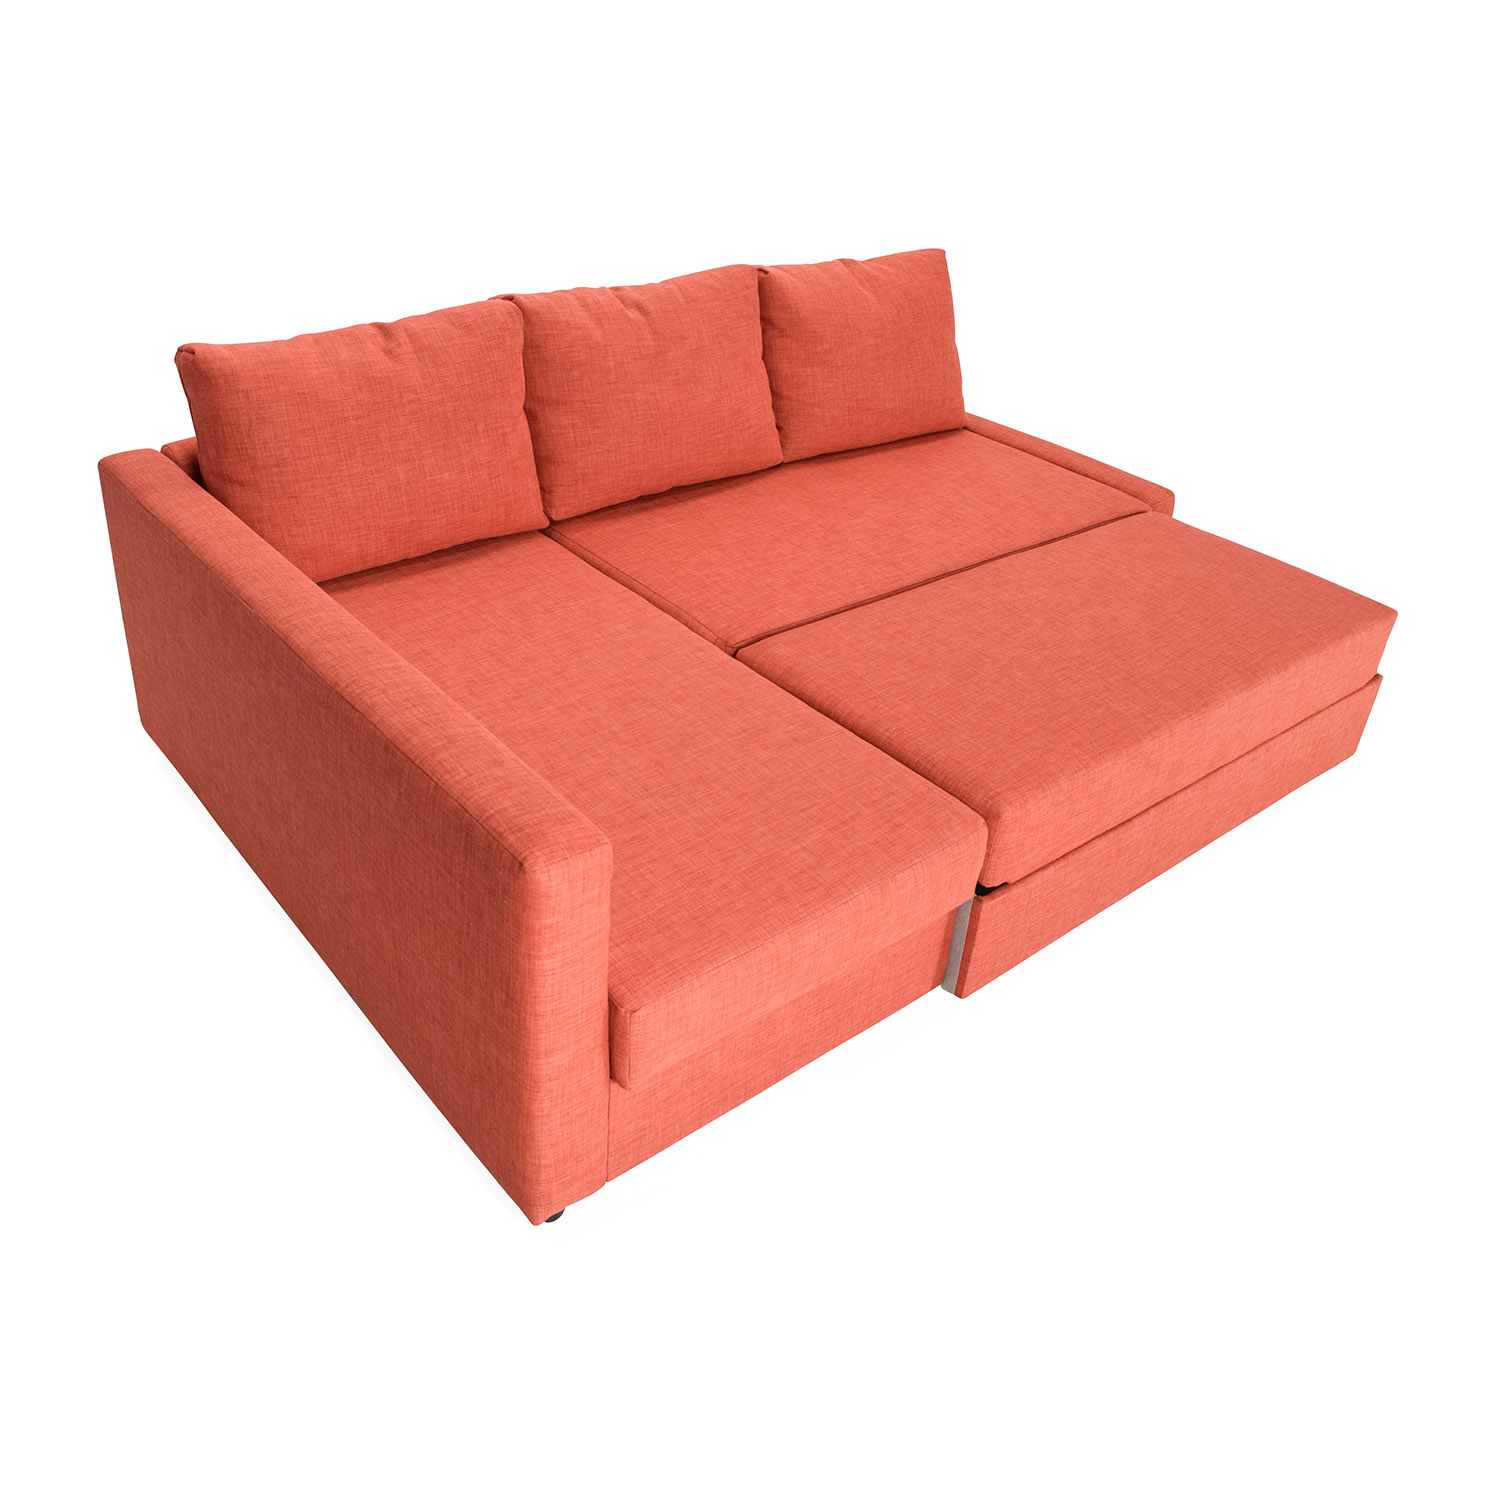 49 off ikea friheten sofa bed with chaise sofas for Chaise sofa bed